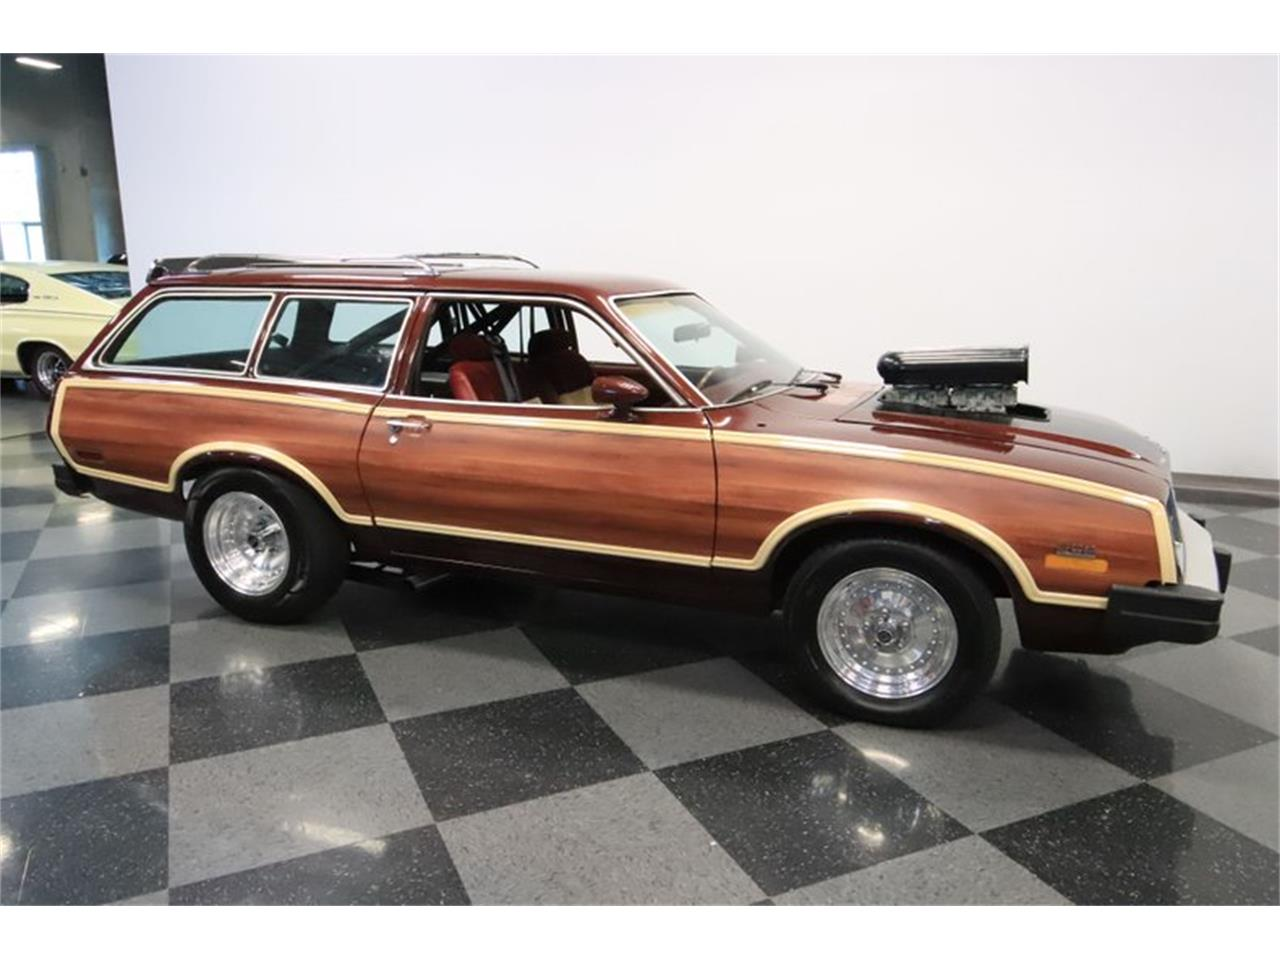 Large Picture of 1980 Ford Pinto located in Arizona - $24,995.00 Offered by Streetside Classics - Phoenix - QZK7